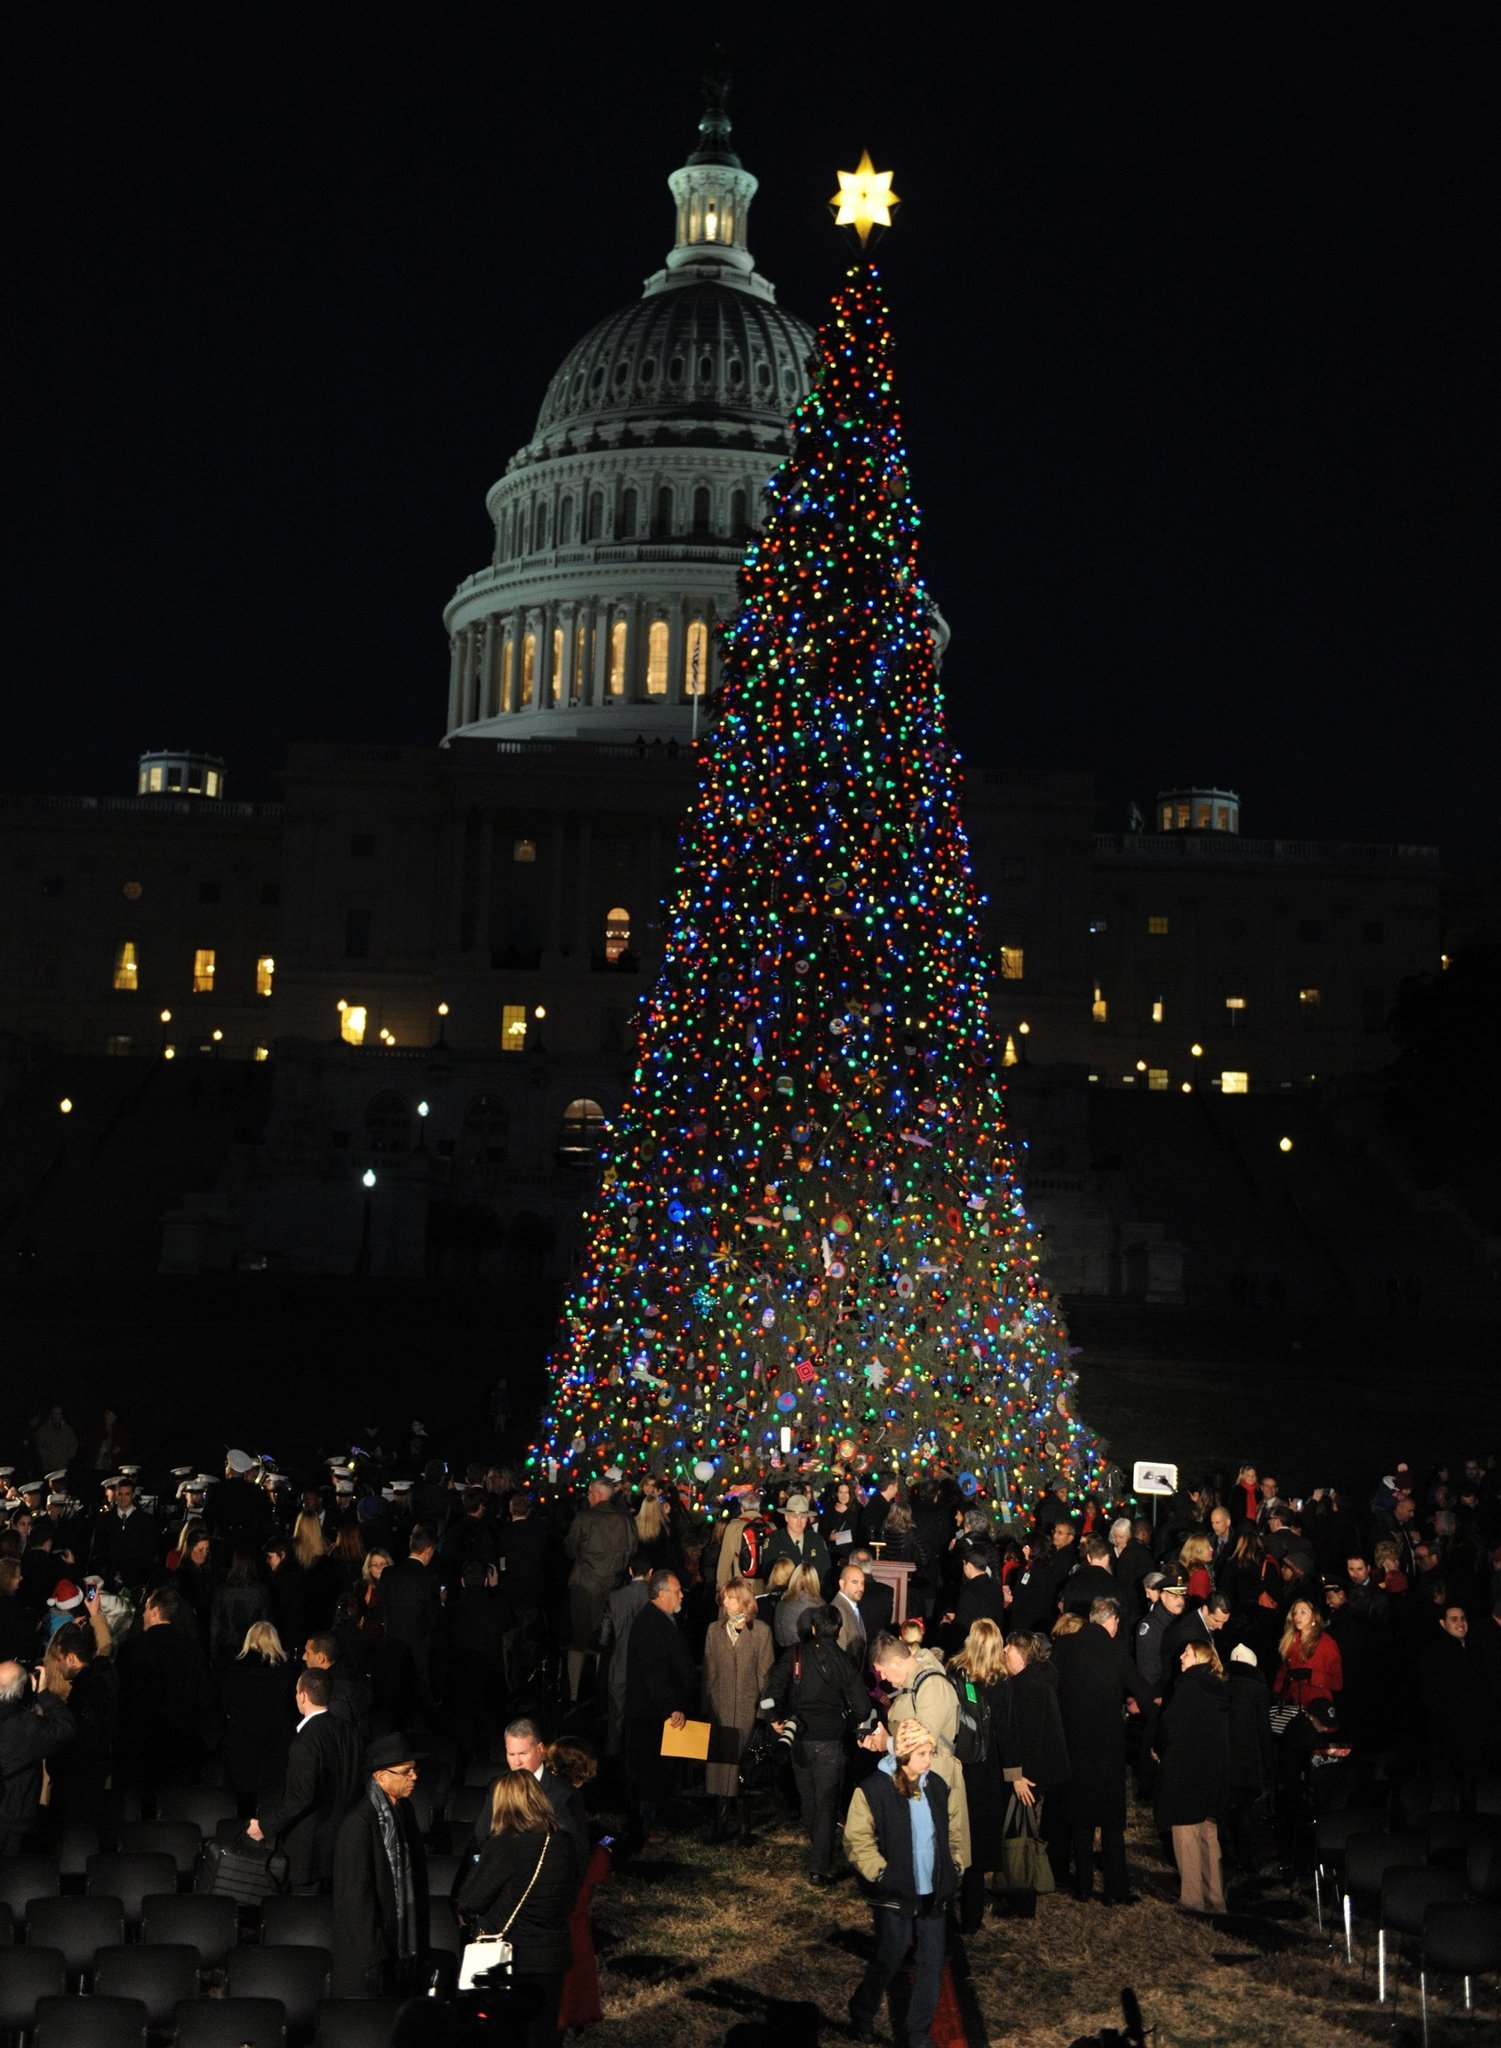 Pictures: Holiday lights from around the globe - In Washington D.C.